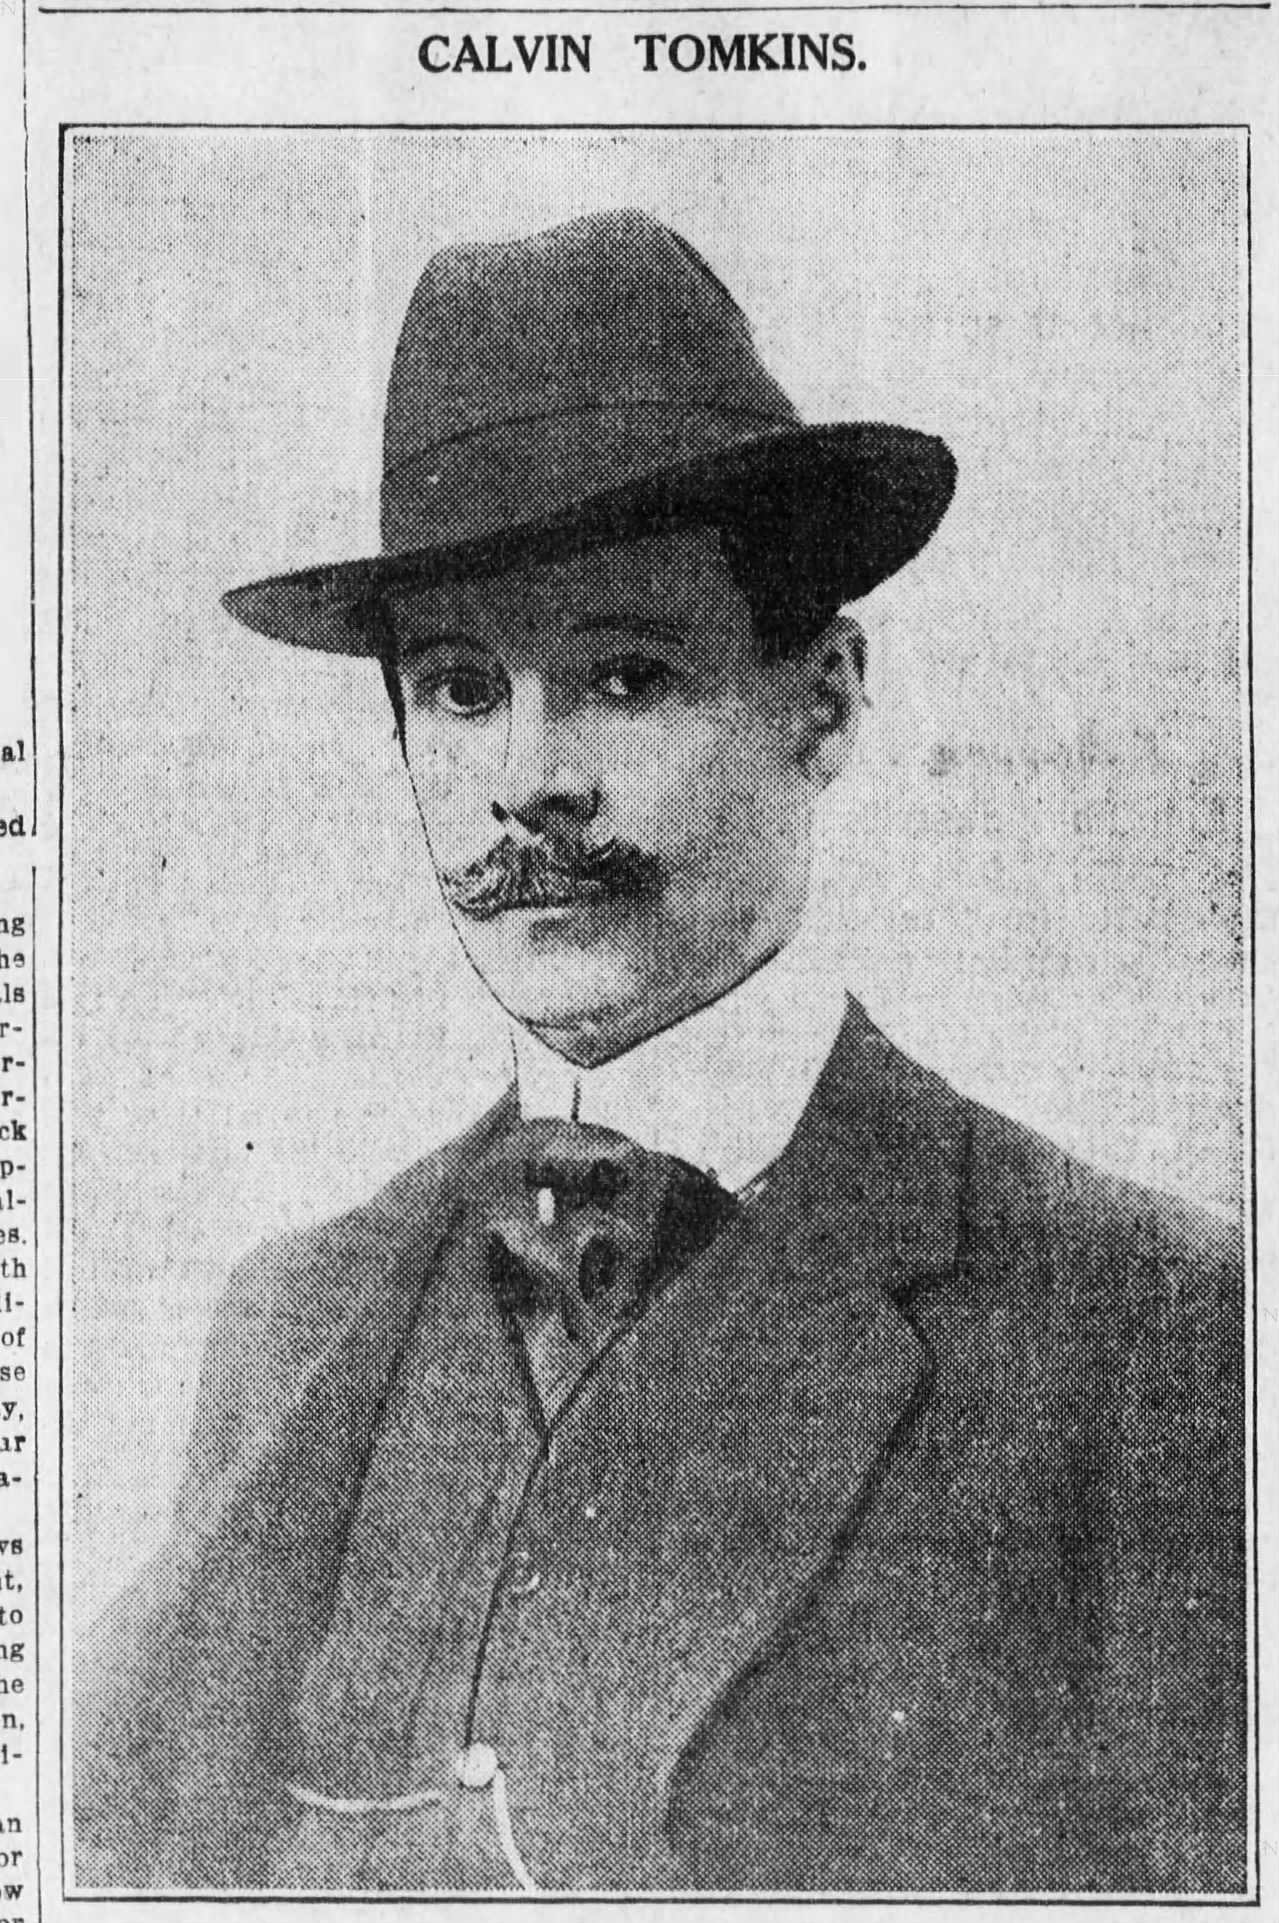 Calvin Tomkins, Commissioner of Docks,  Brooklyn Daily Eagle , June 21, 1911.